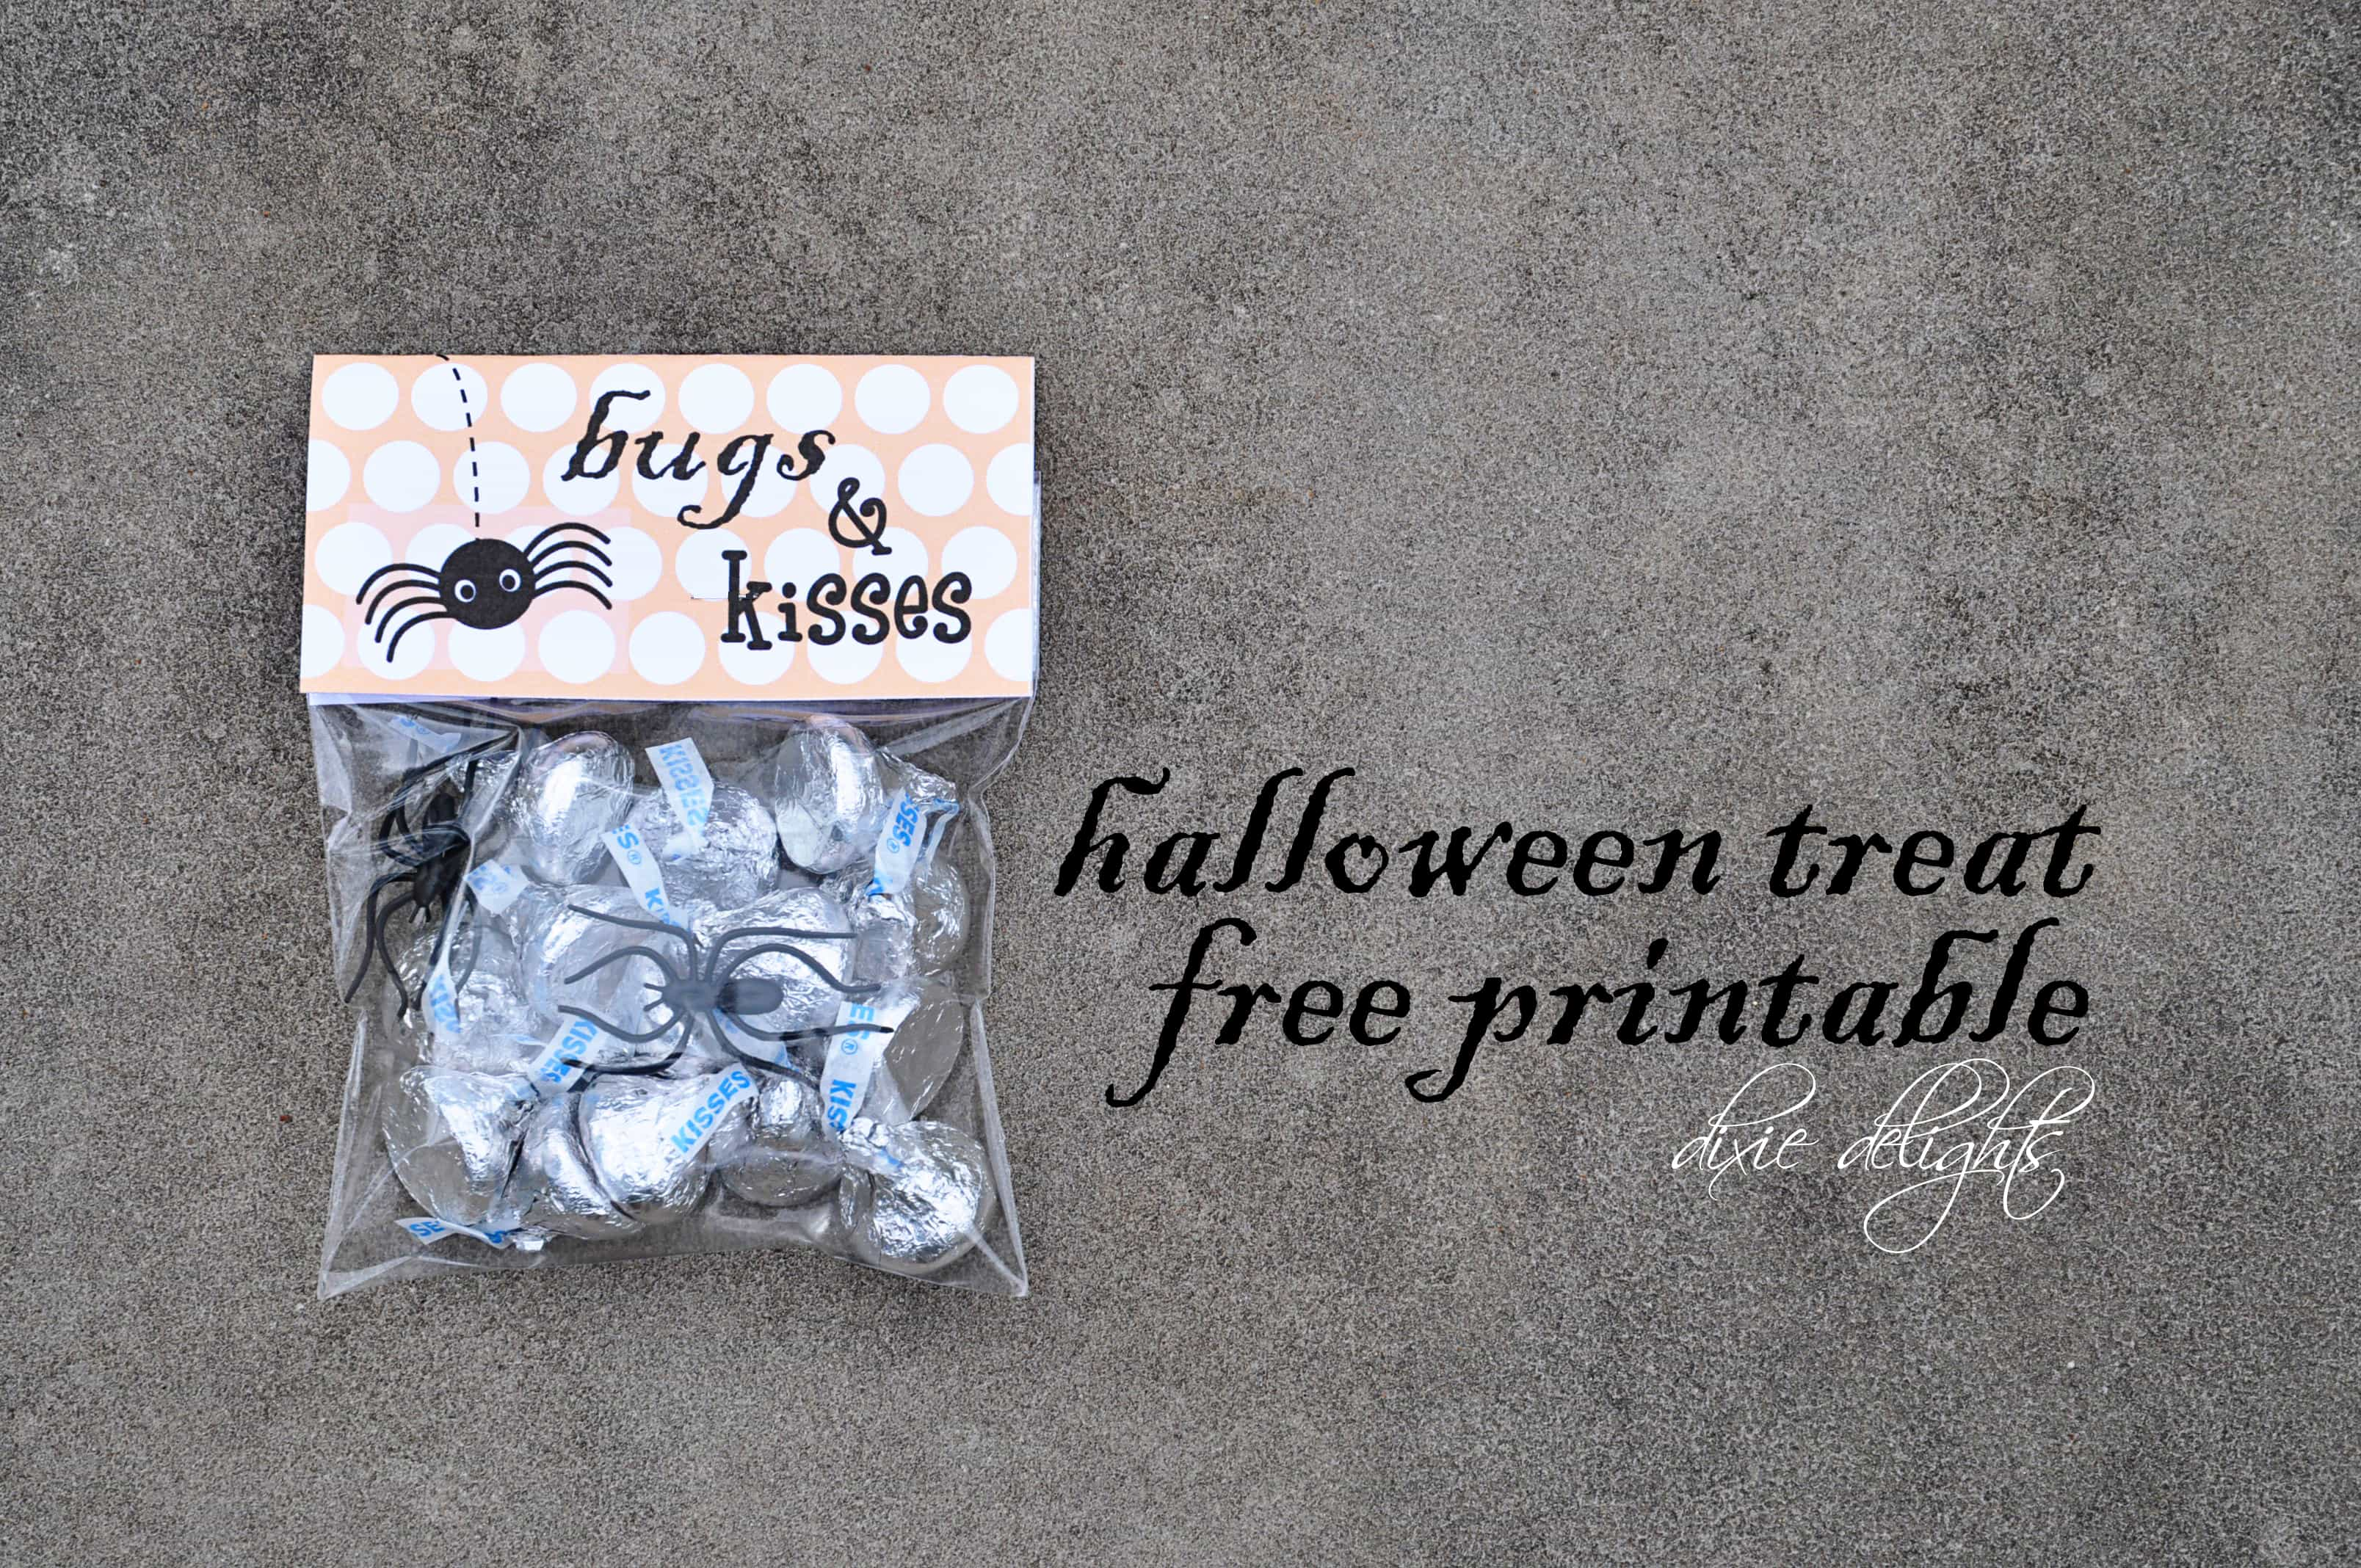 image relating to Bugs and Kisses Printable named Insects Kisses Halloween Handle No cost Printable Dixie Delights